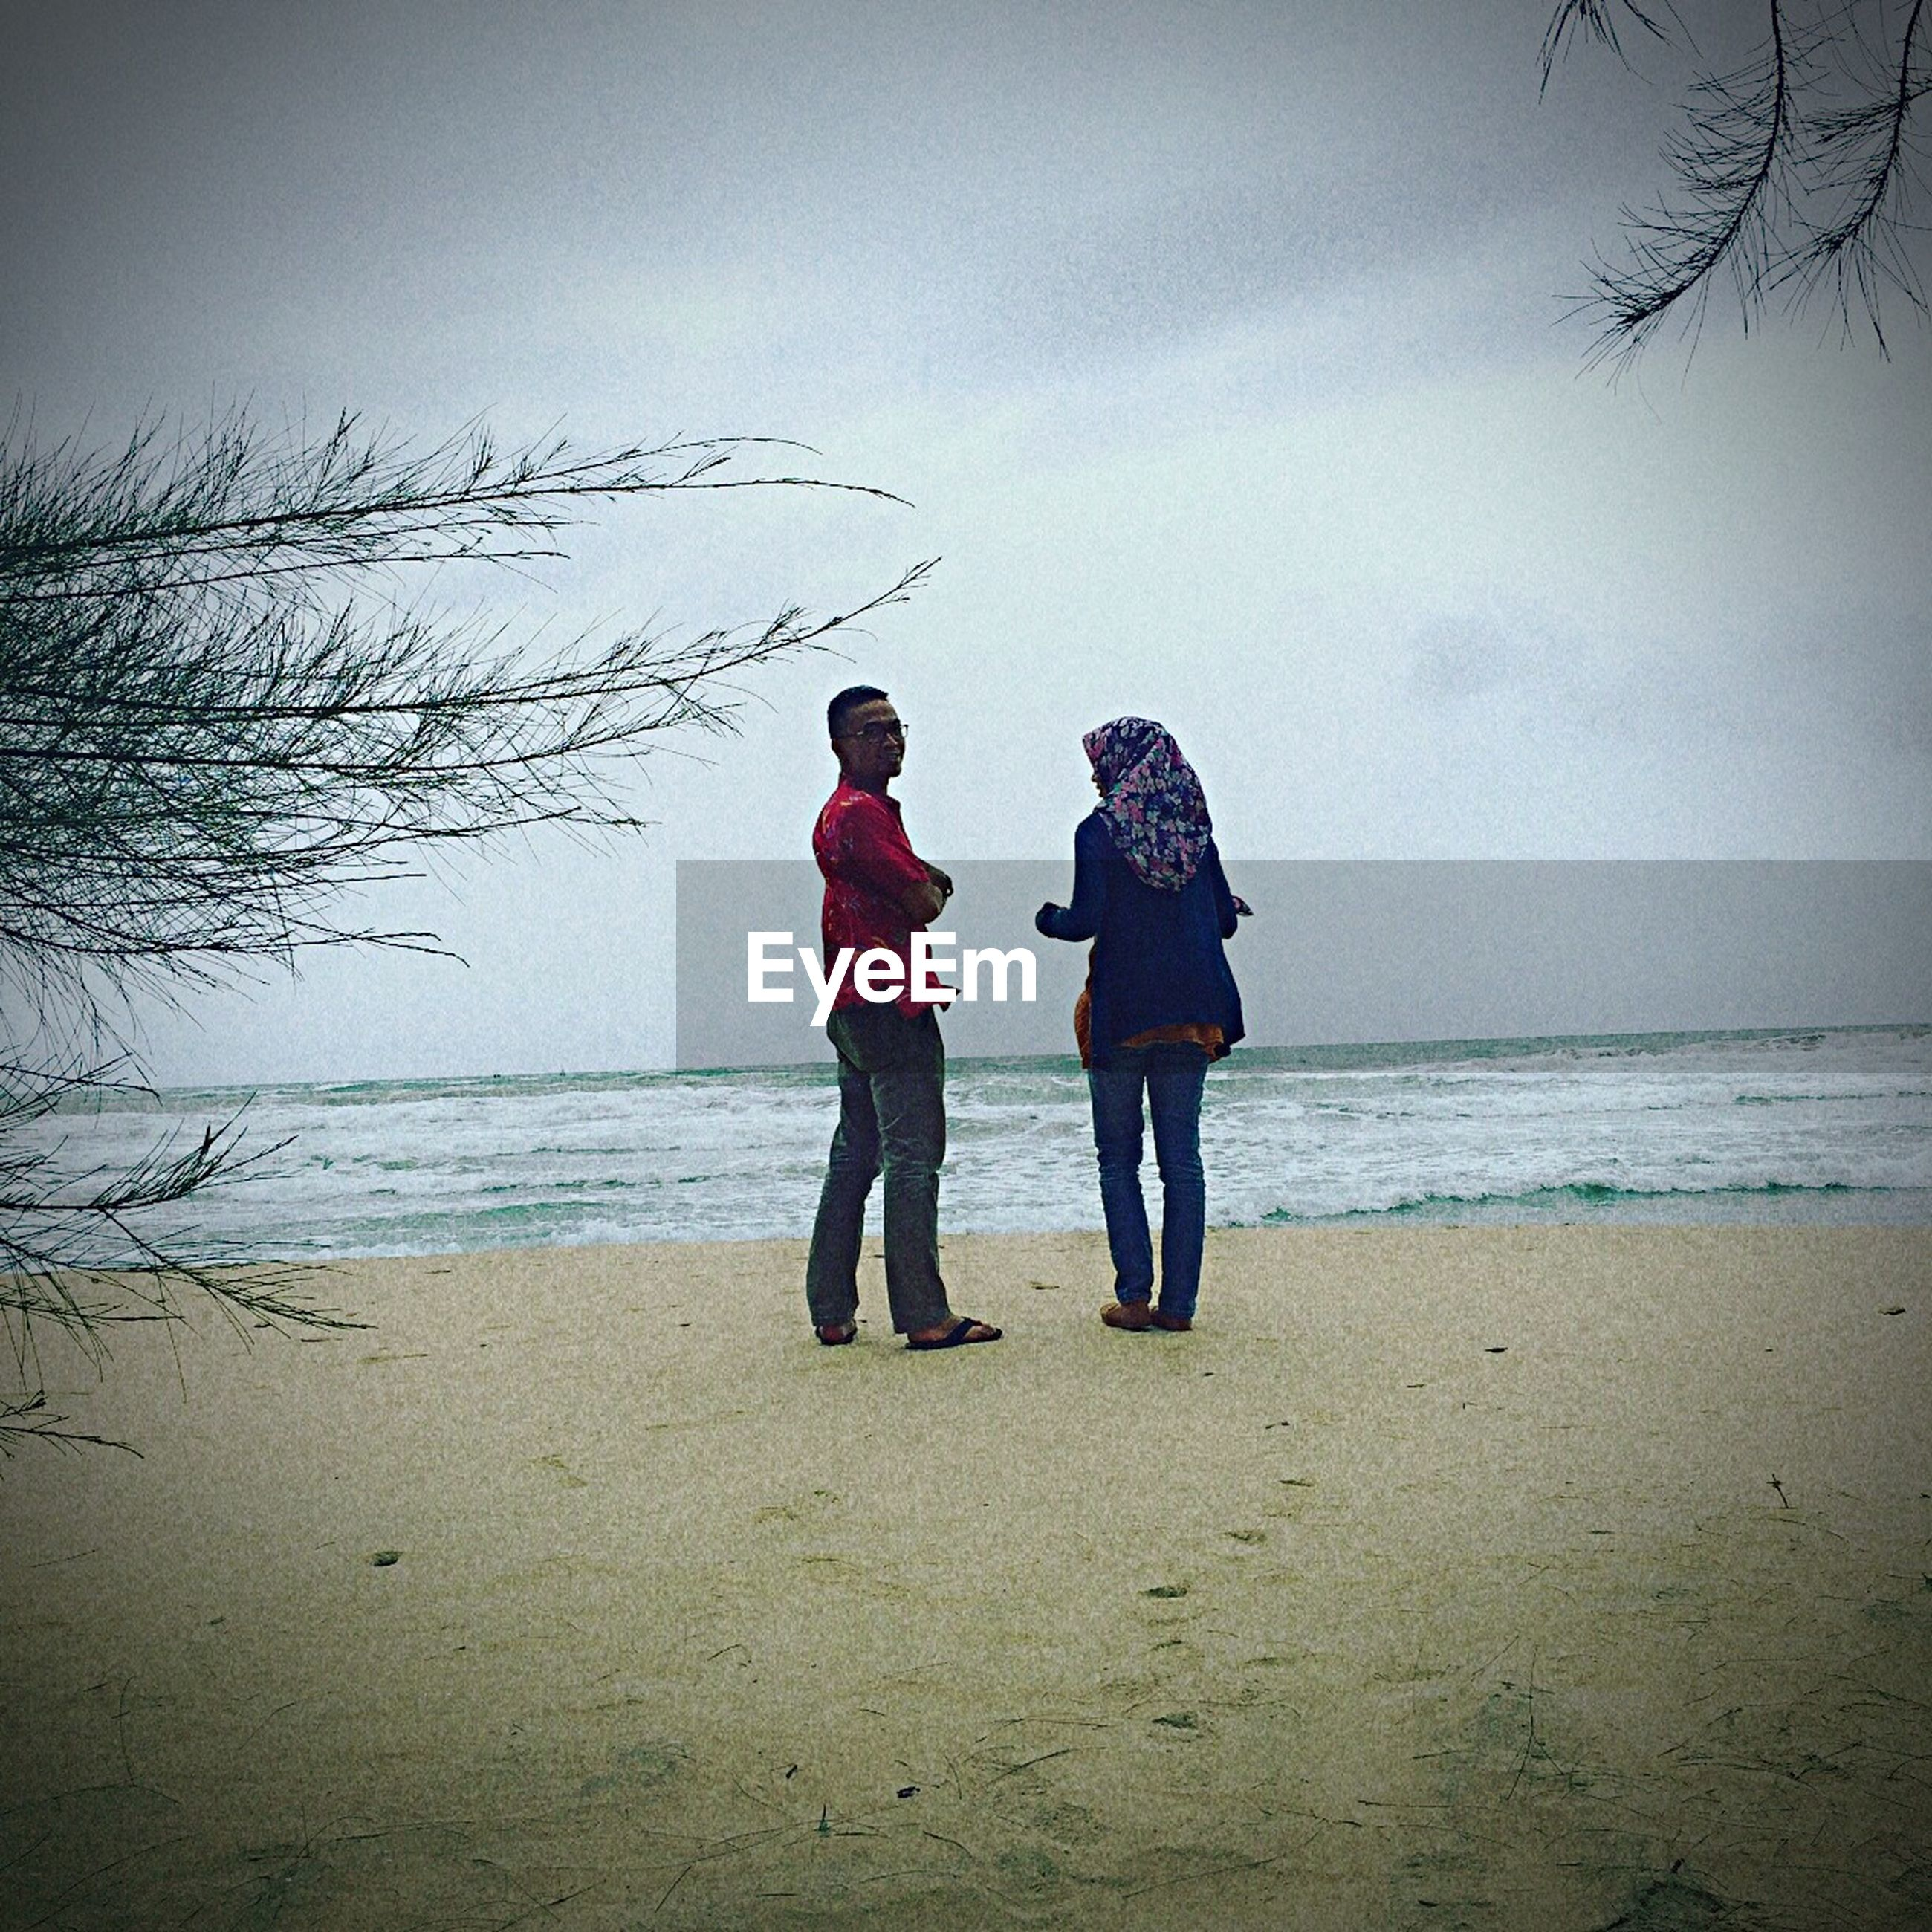 two people, full length, togetherness, beach, friendship, sea, bonding, real people, leisure activity, outdoors, happiness, sand, people, sky, connection, horizon over water, childhood, beauty in nature, day, nature, technology, adult, adults only